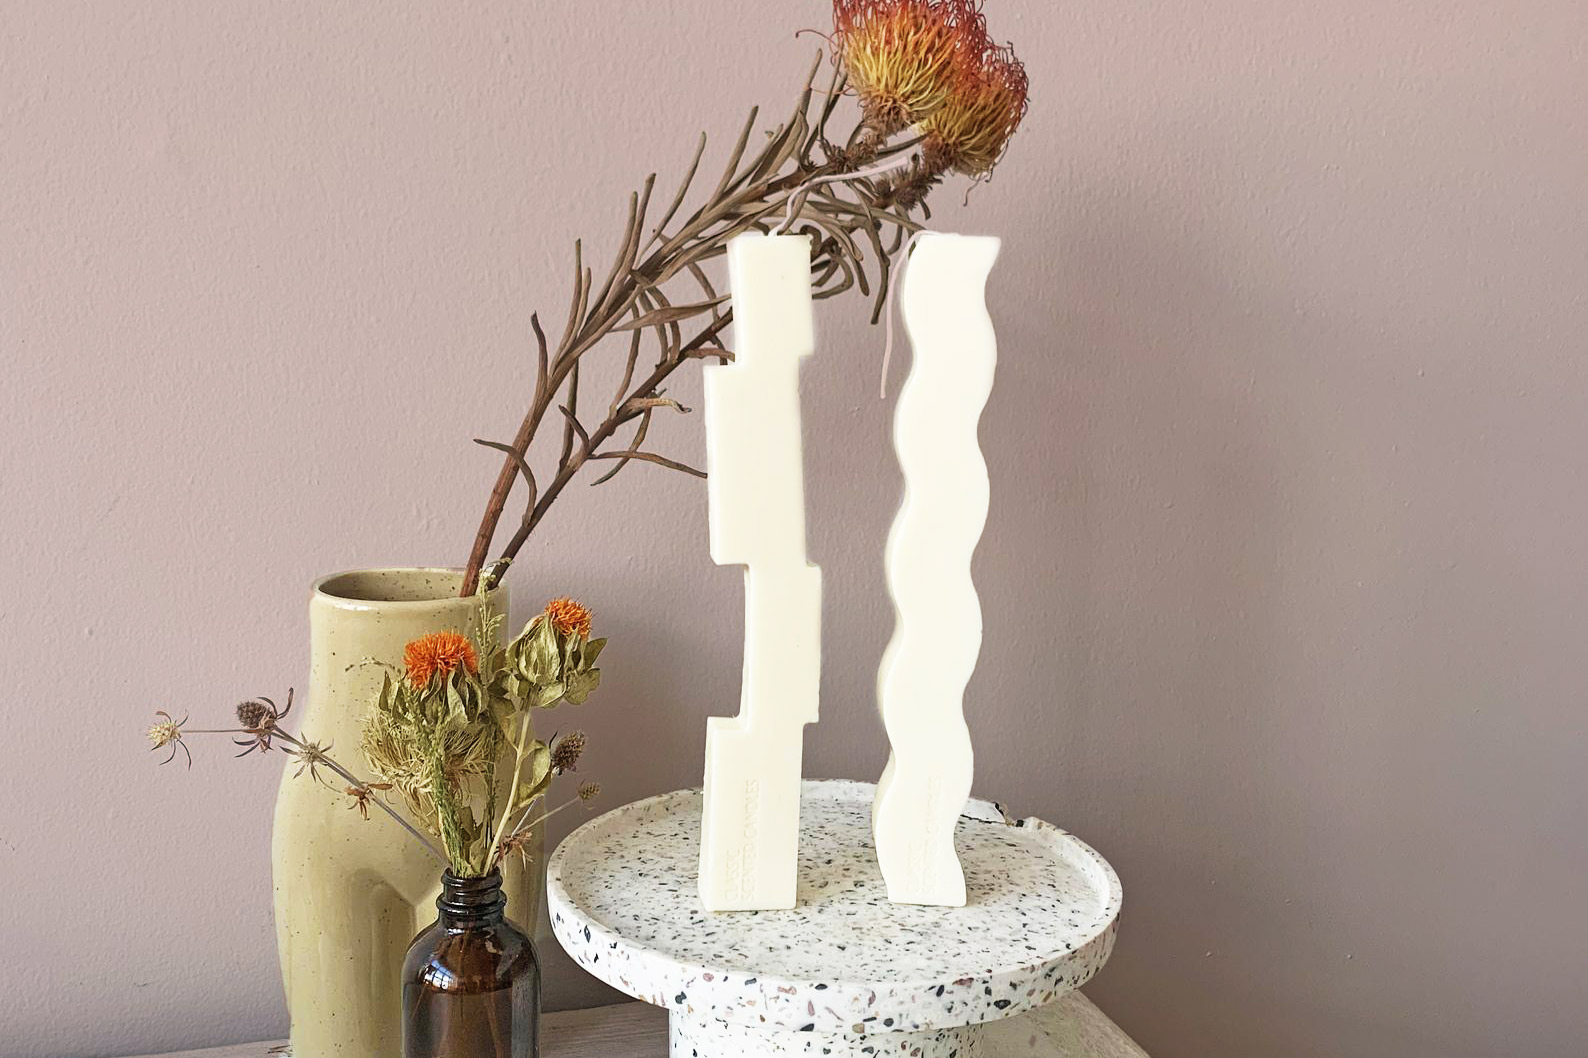 squiggly shaped candles